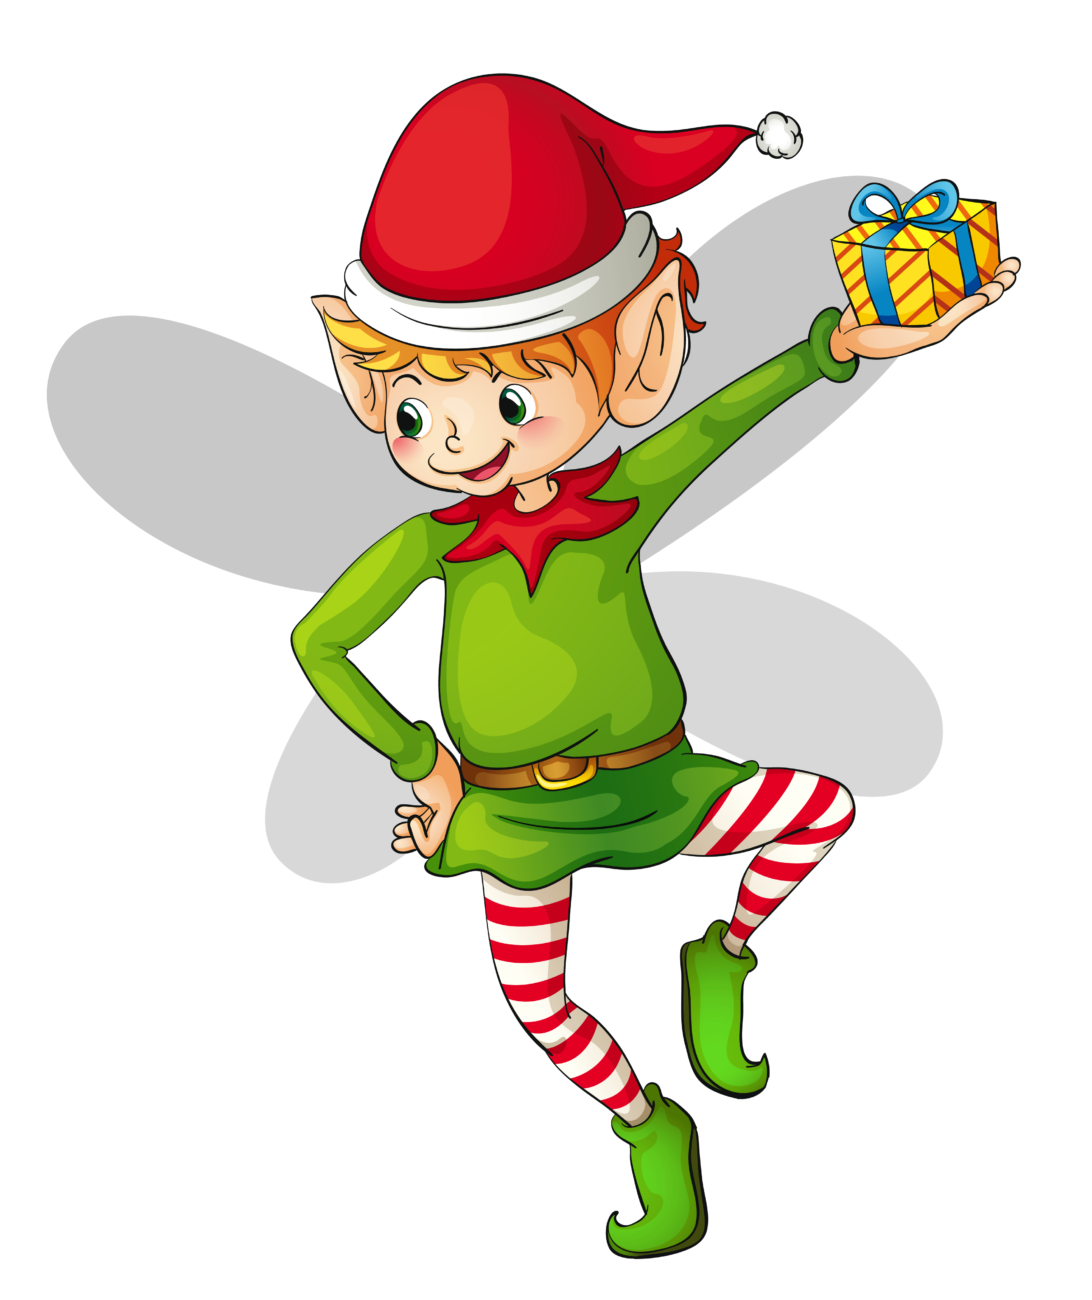 Christmas leprechaun clipart clipart library Leprechaun clipart christmas, Leprechaun christmas Transparent FREE ... clipart library